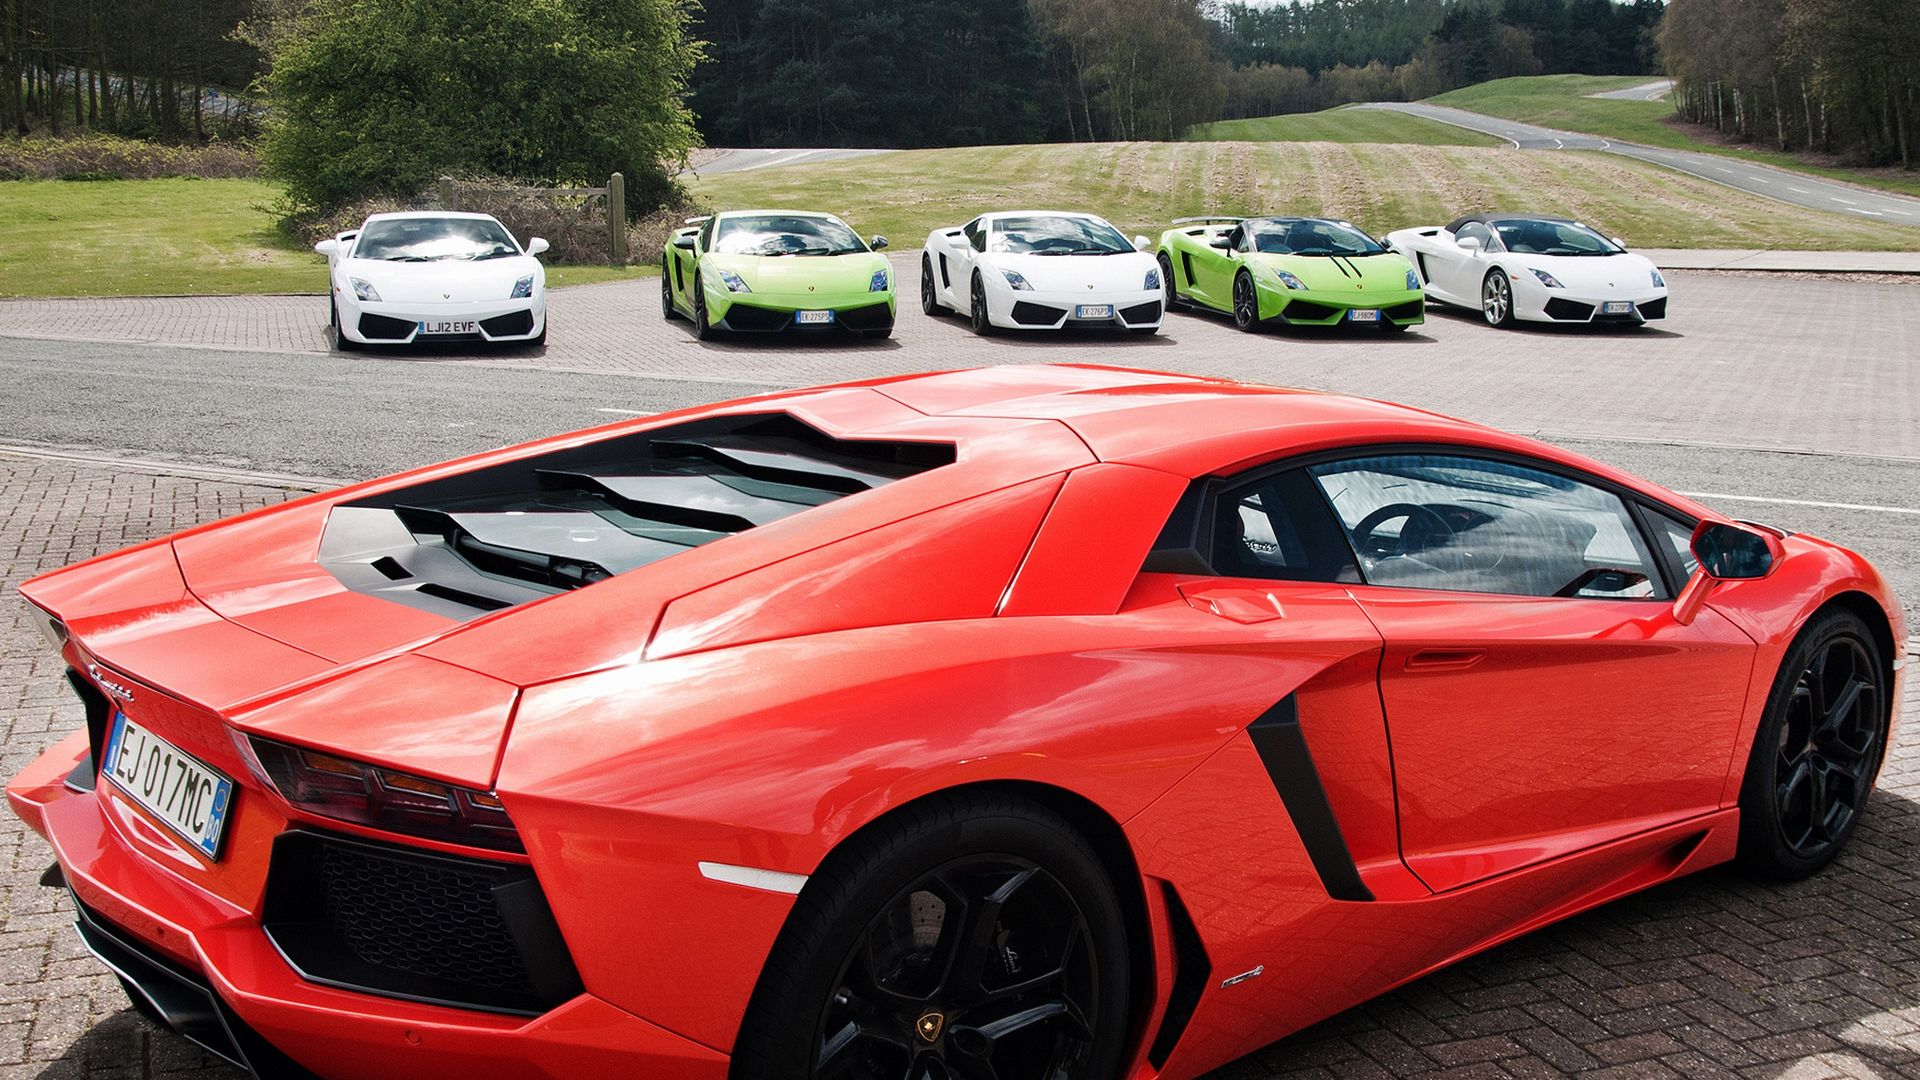 The Wallpapers Related to Lamborghini Aventador, Supercar